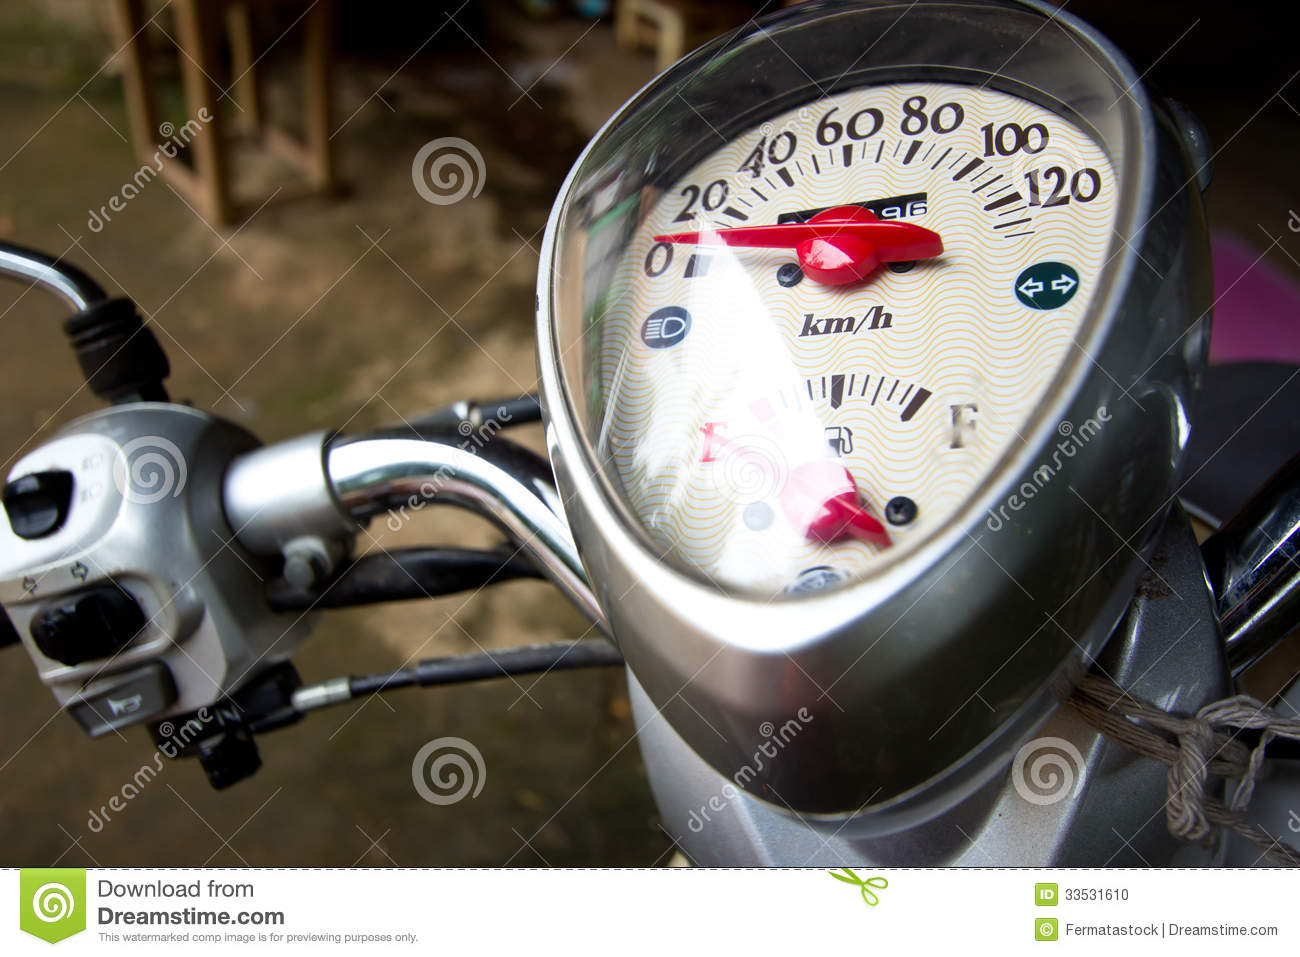 Motorcycle Instrument Panel : Motorcycle stock photo image